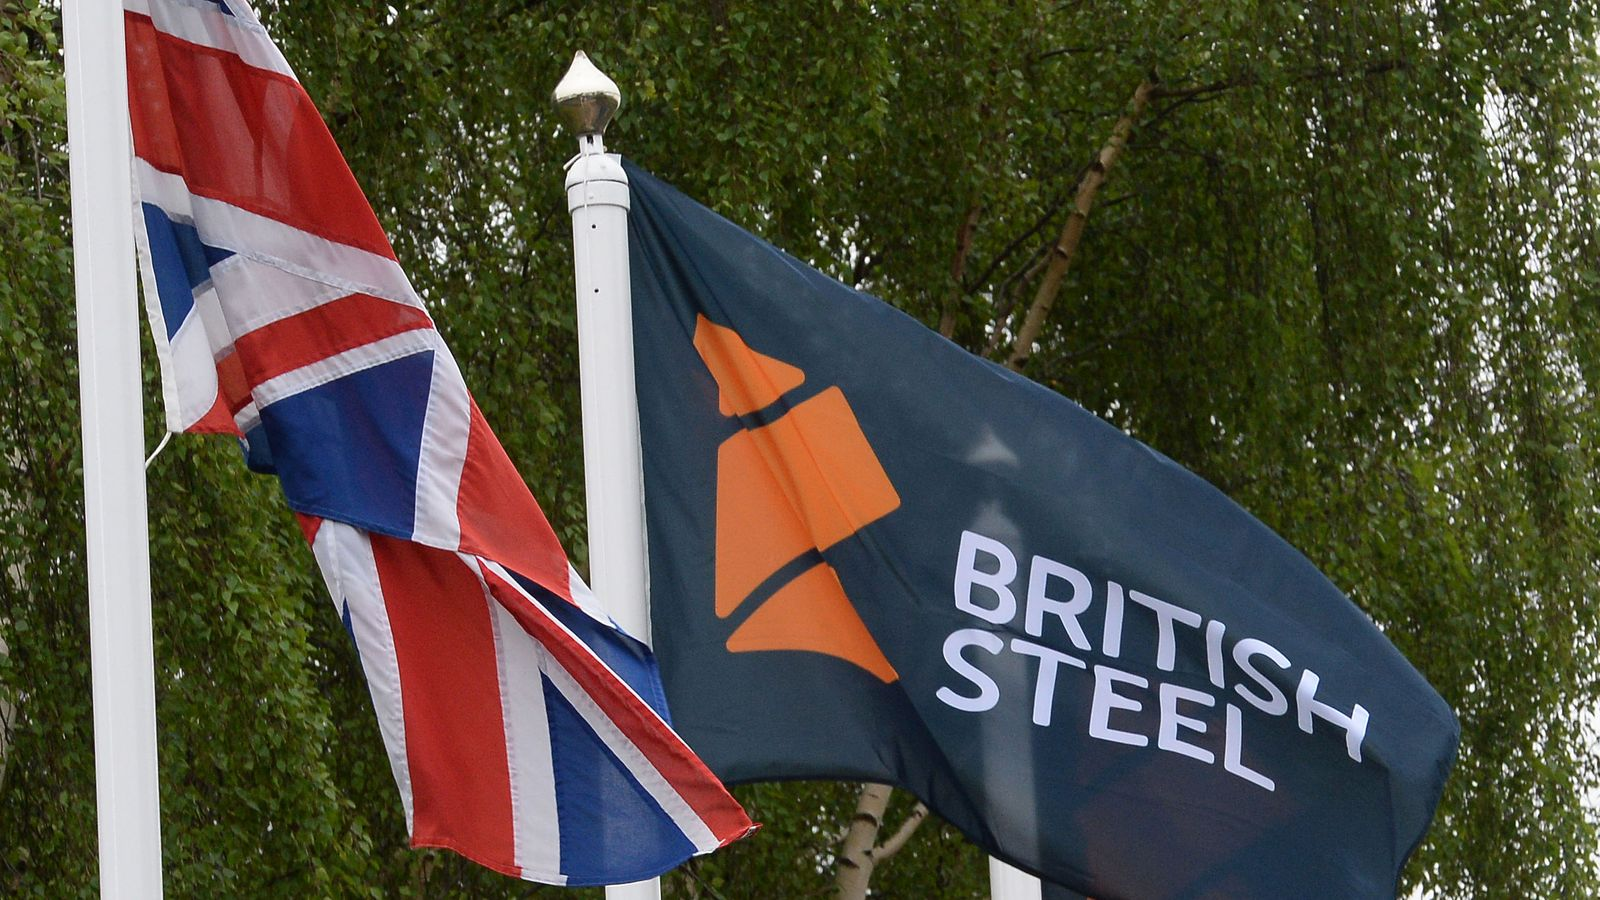 british steel - photo #31